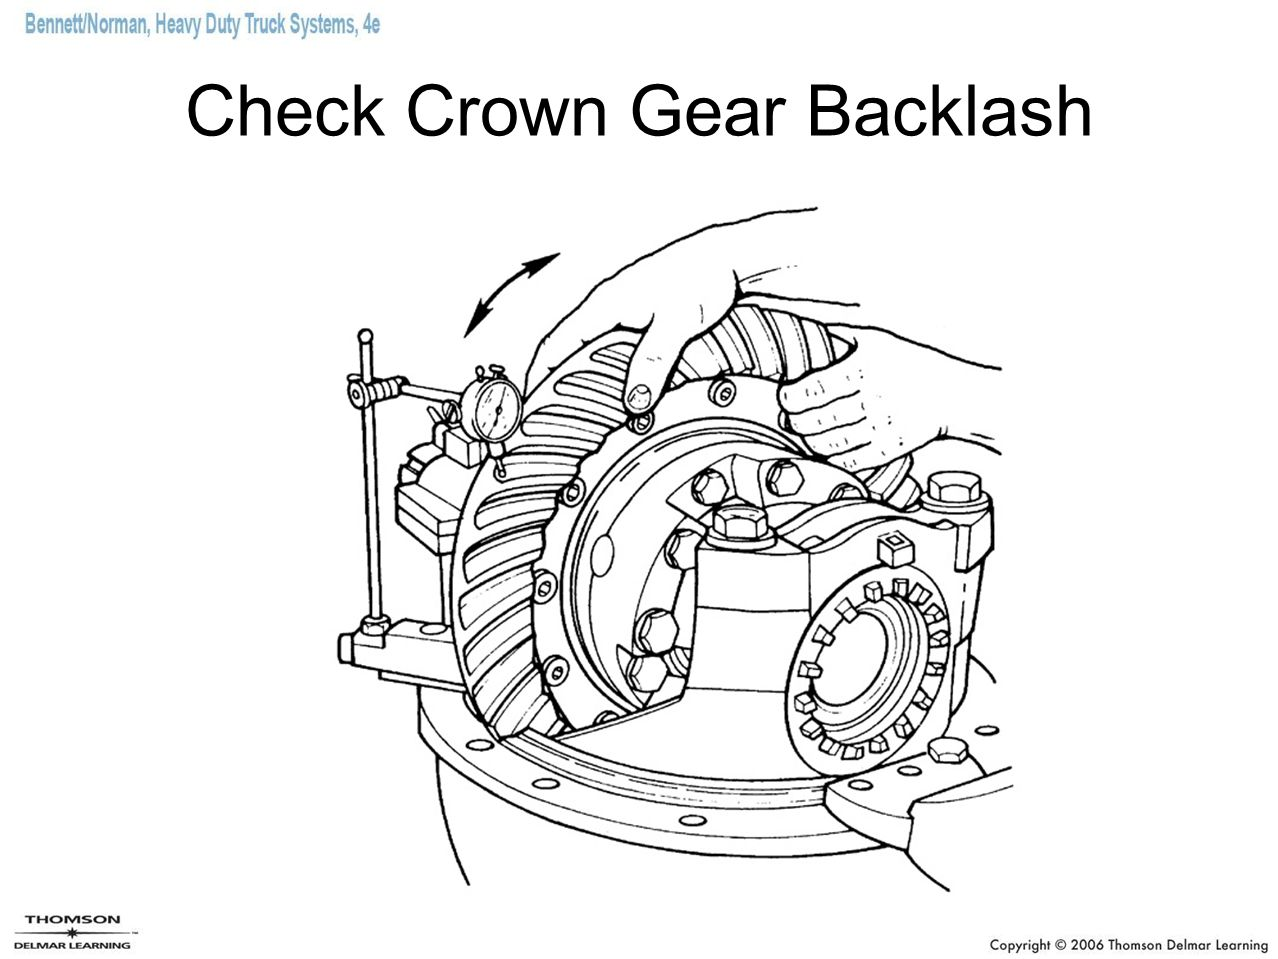 Check Crown Gear Backlash